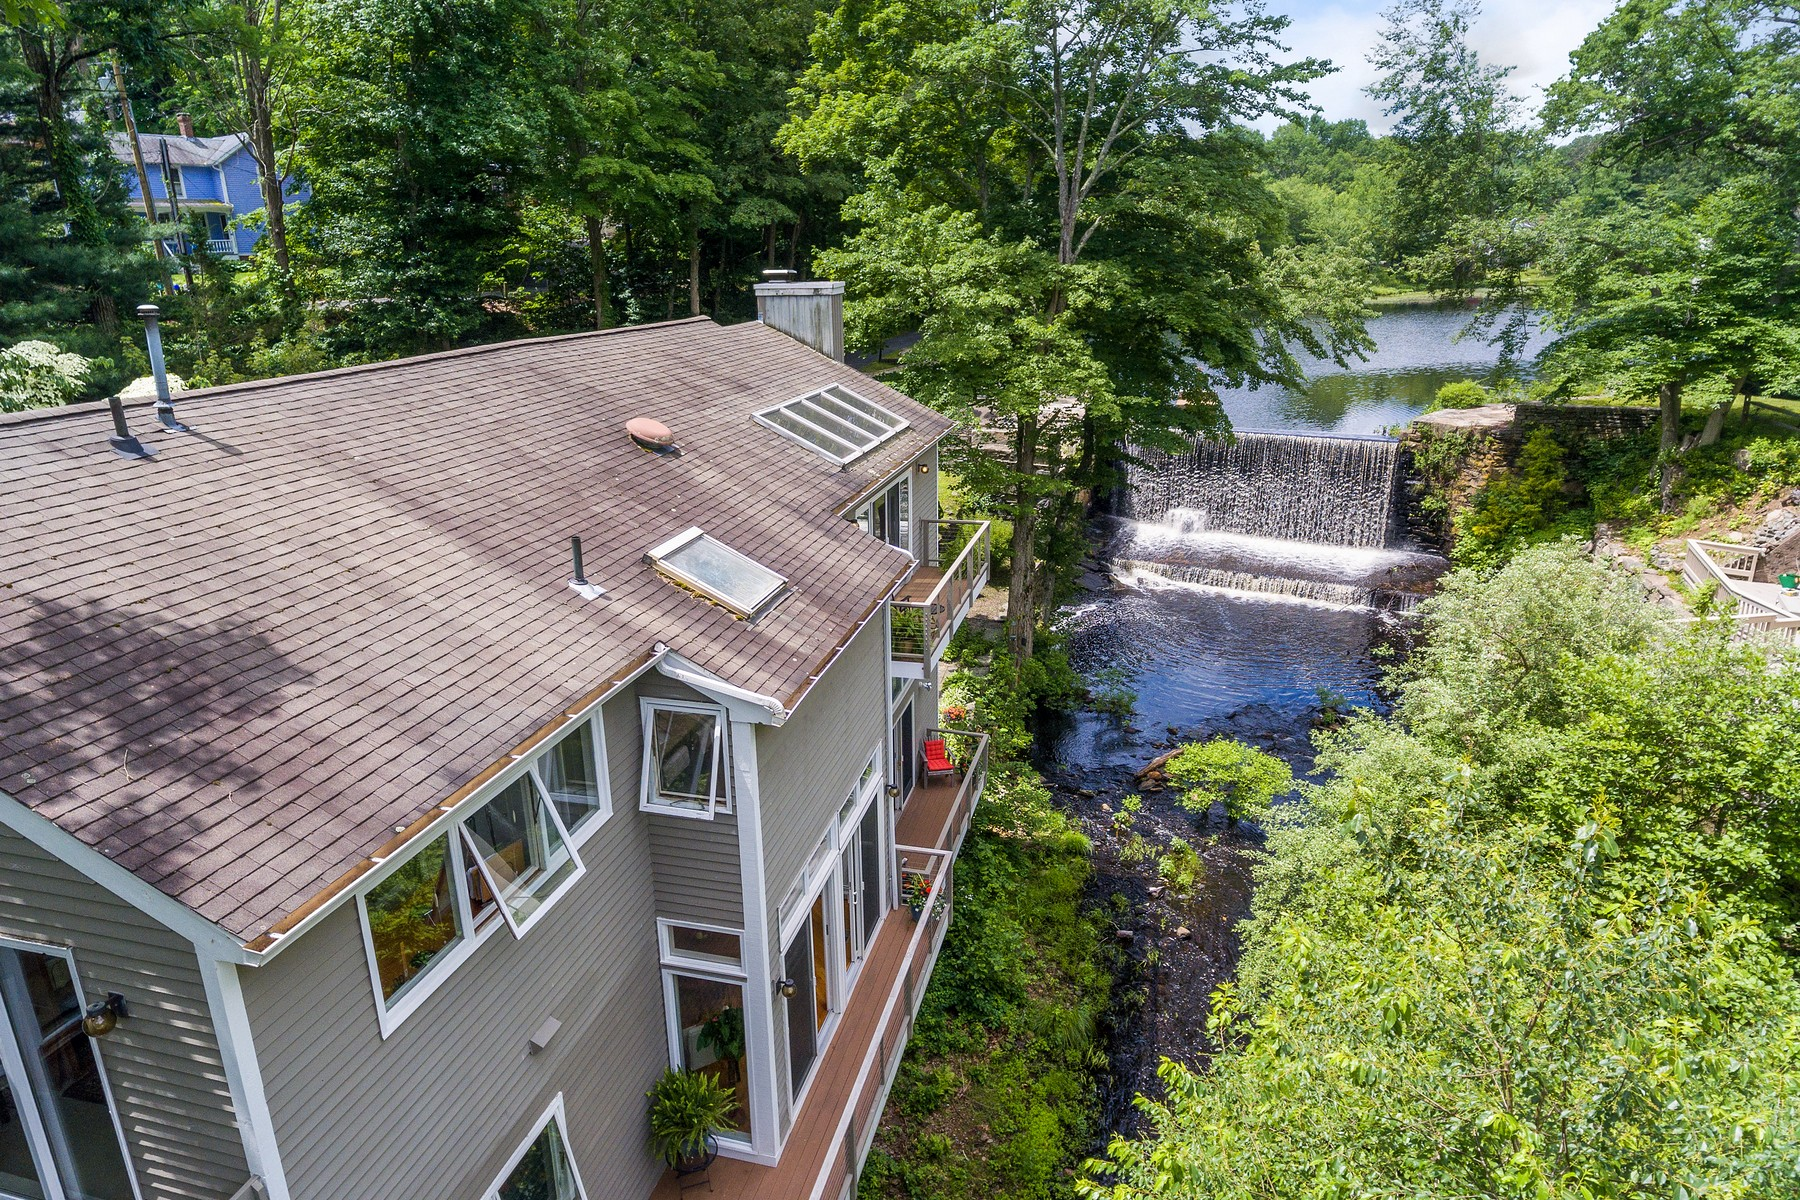 Single Family Homes for Sale at Sun-Filled Contemporary in Beautiful Setting 26 Spring Street Chester, Connecticut 06412 United States